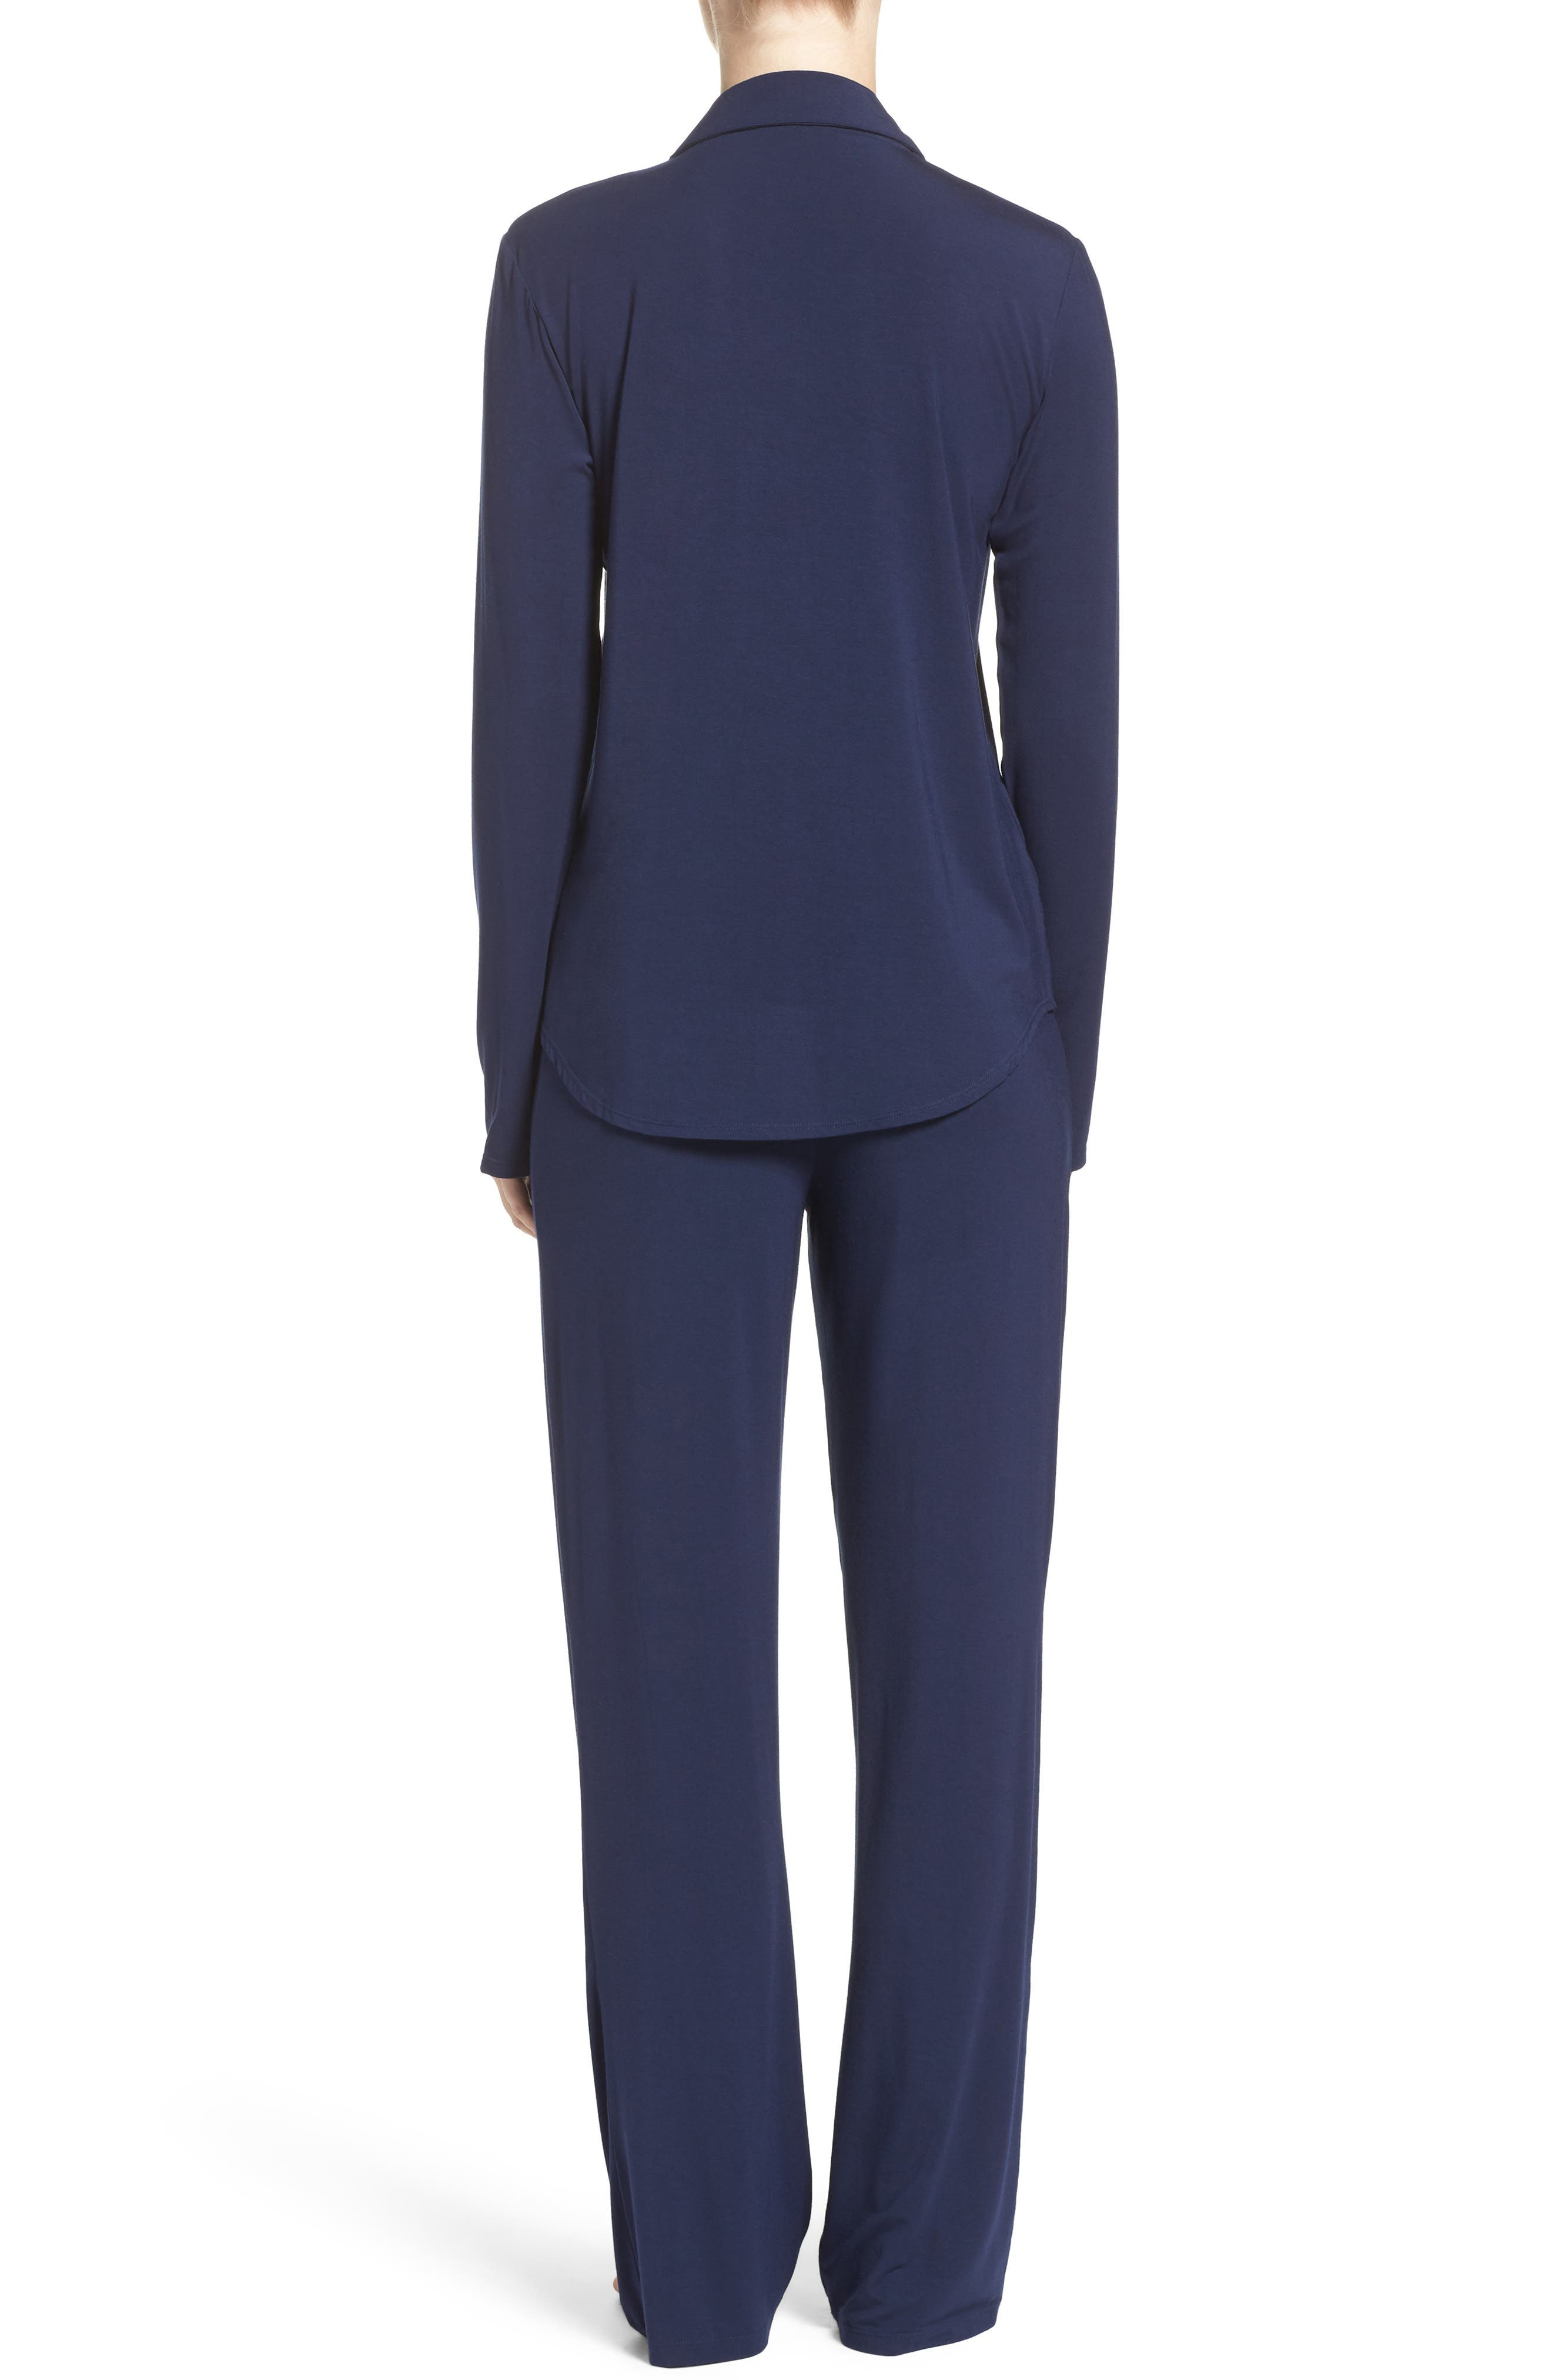 Stretch Modal Pajamas,                             Alternate thumbnail 2, color,                             PEACOAT BLUE